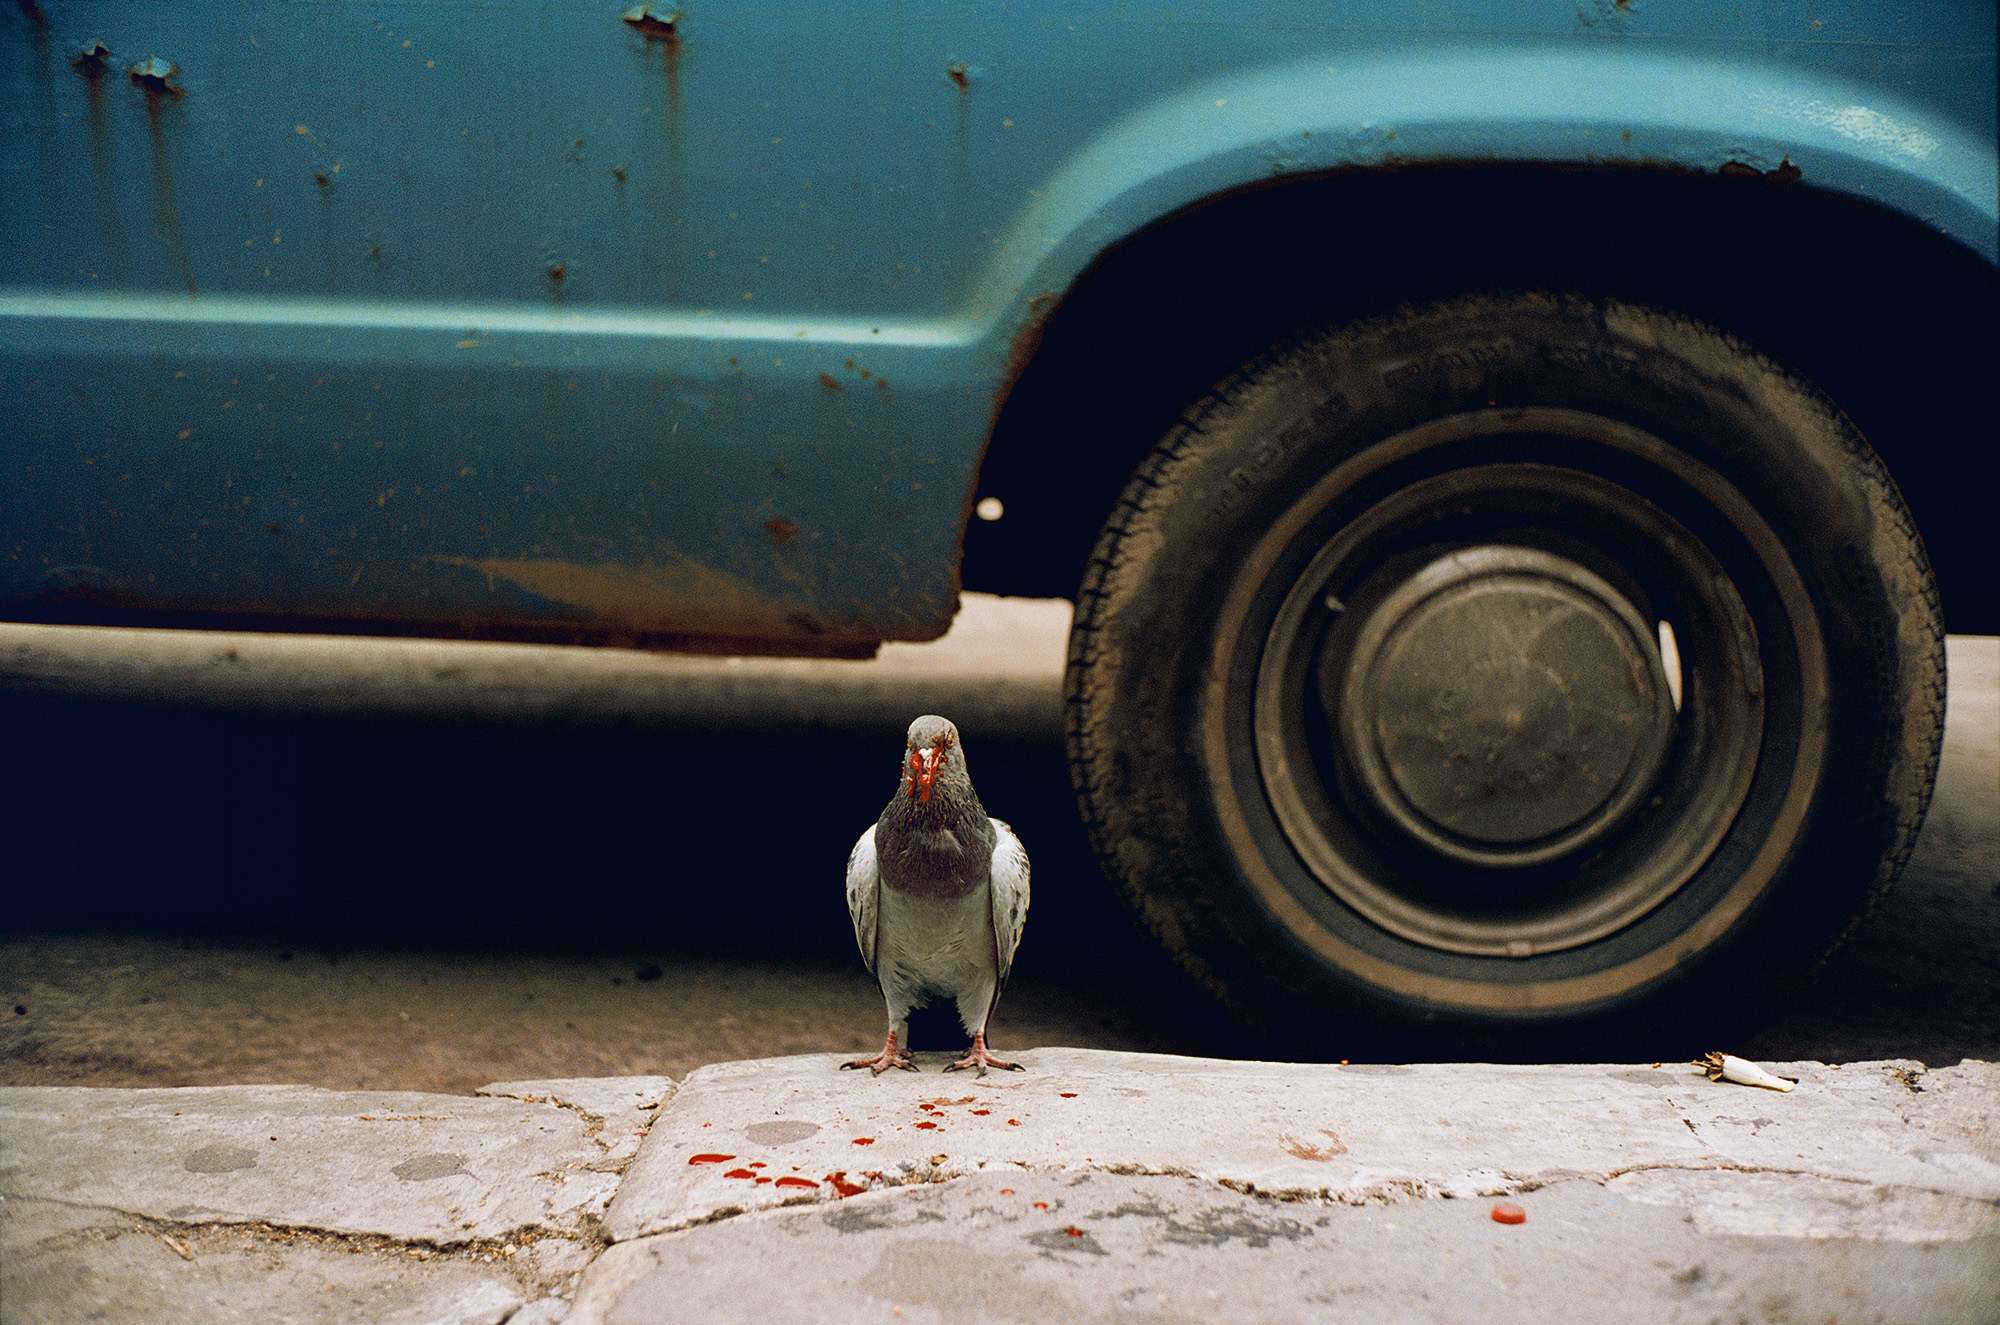 A bloody pigeon stands on the sidewalk in front of a blue car